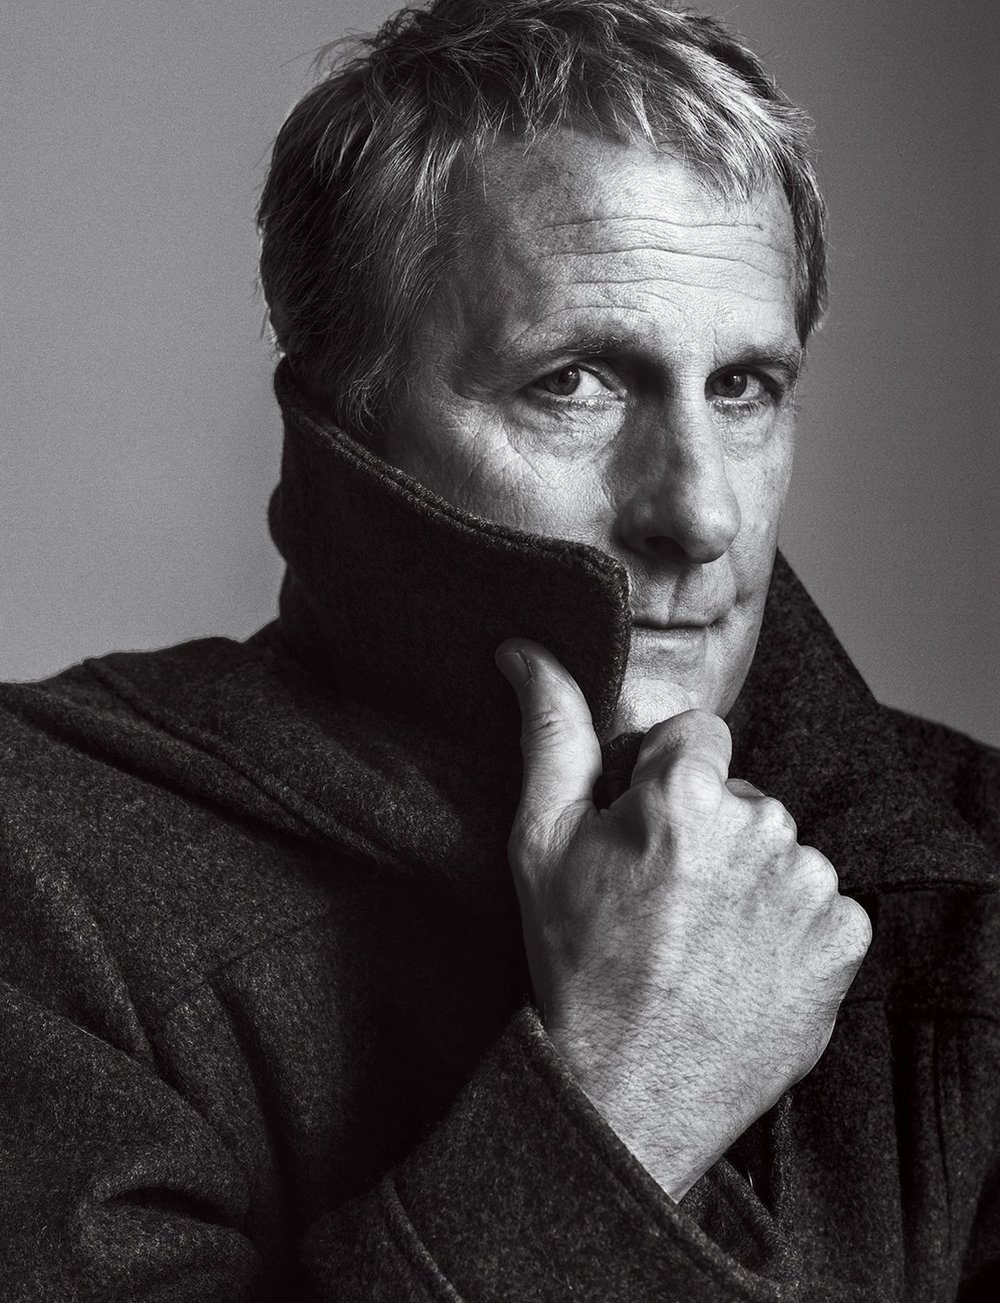 blackbird-broadway-play-jeff-daniels-2.jpg